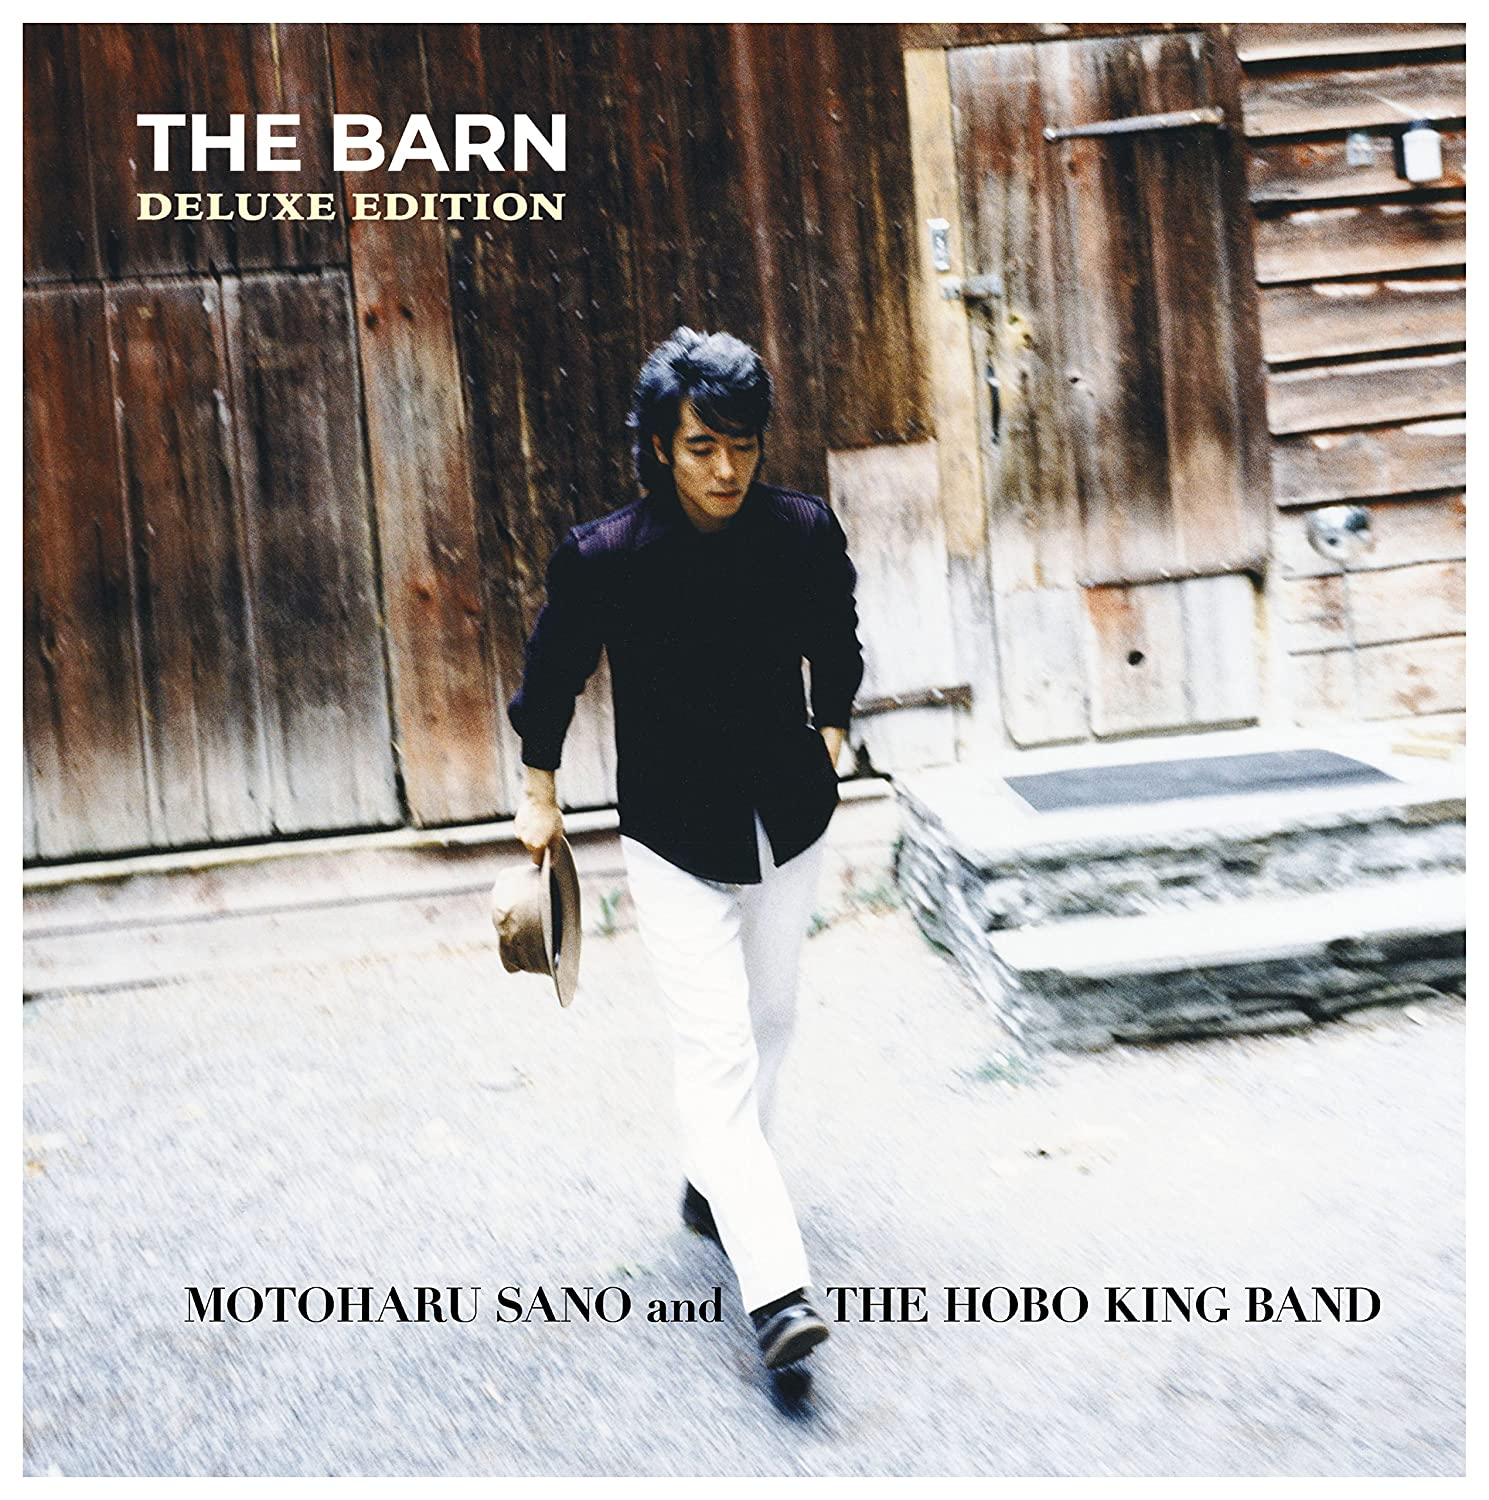 THE BARN DELUXE EDITION(完全生産限定盤) [Blu-ray] B077Y3QTS2